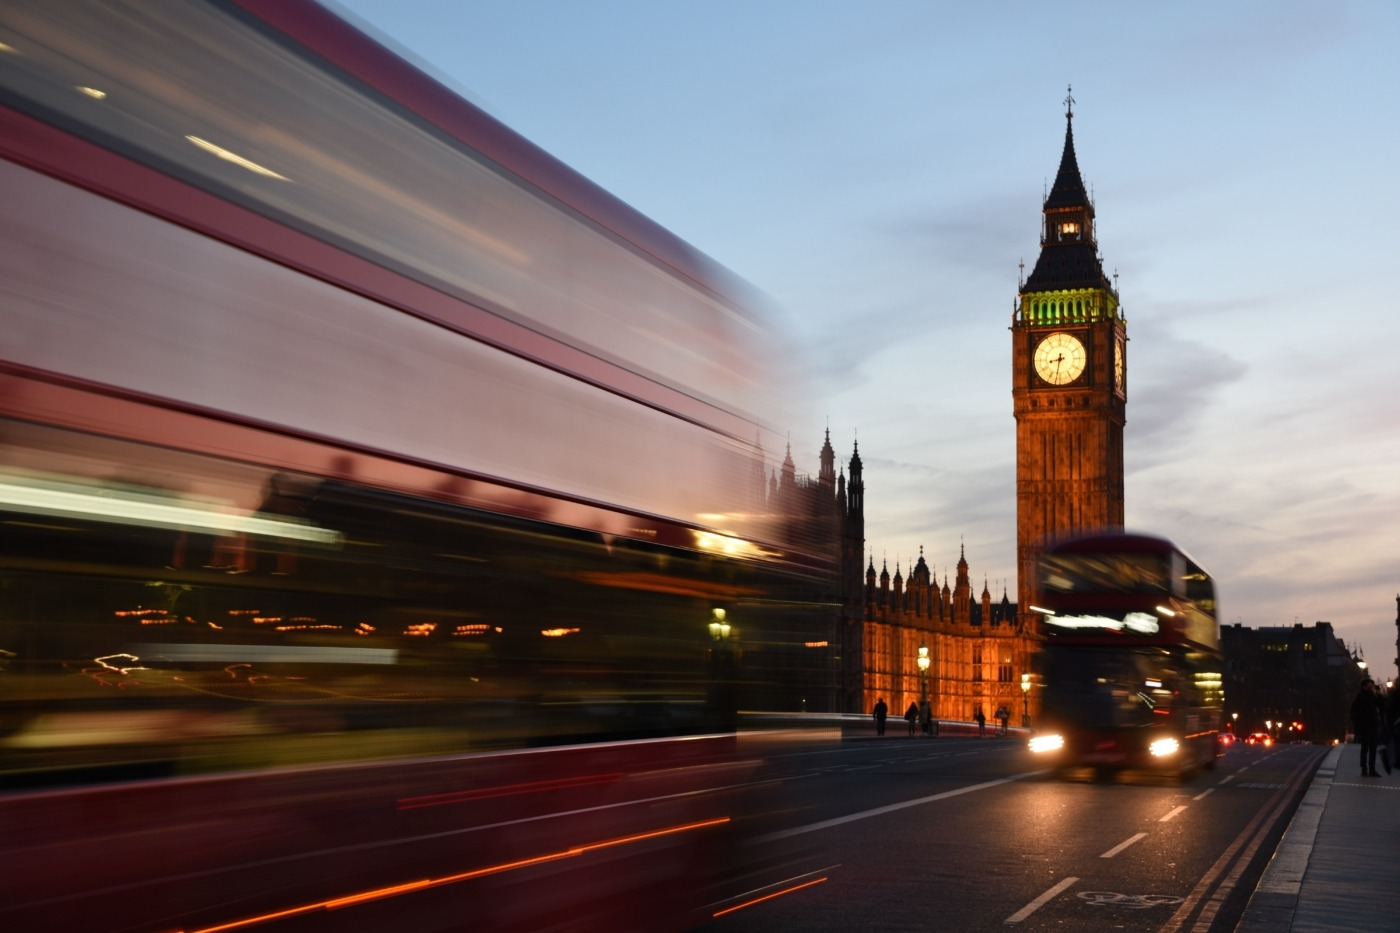 Don't let a student budget hold you back from travelling the UK